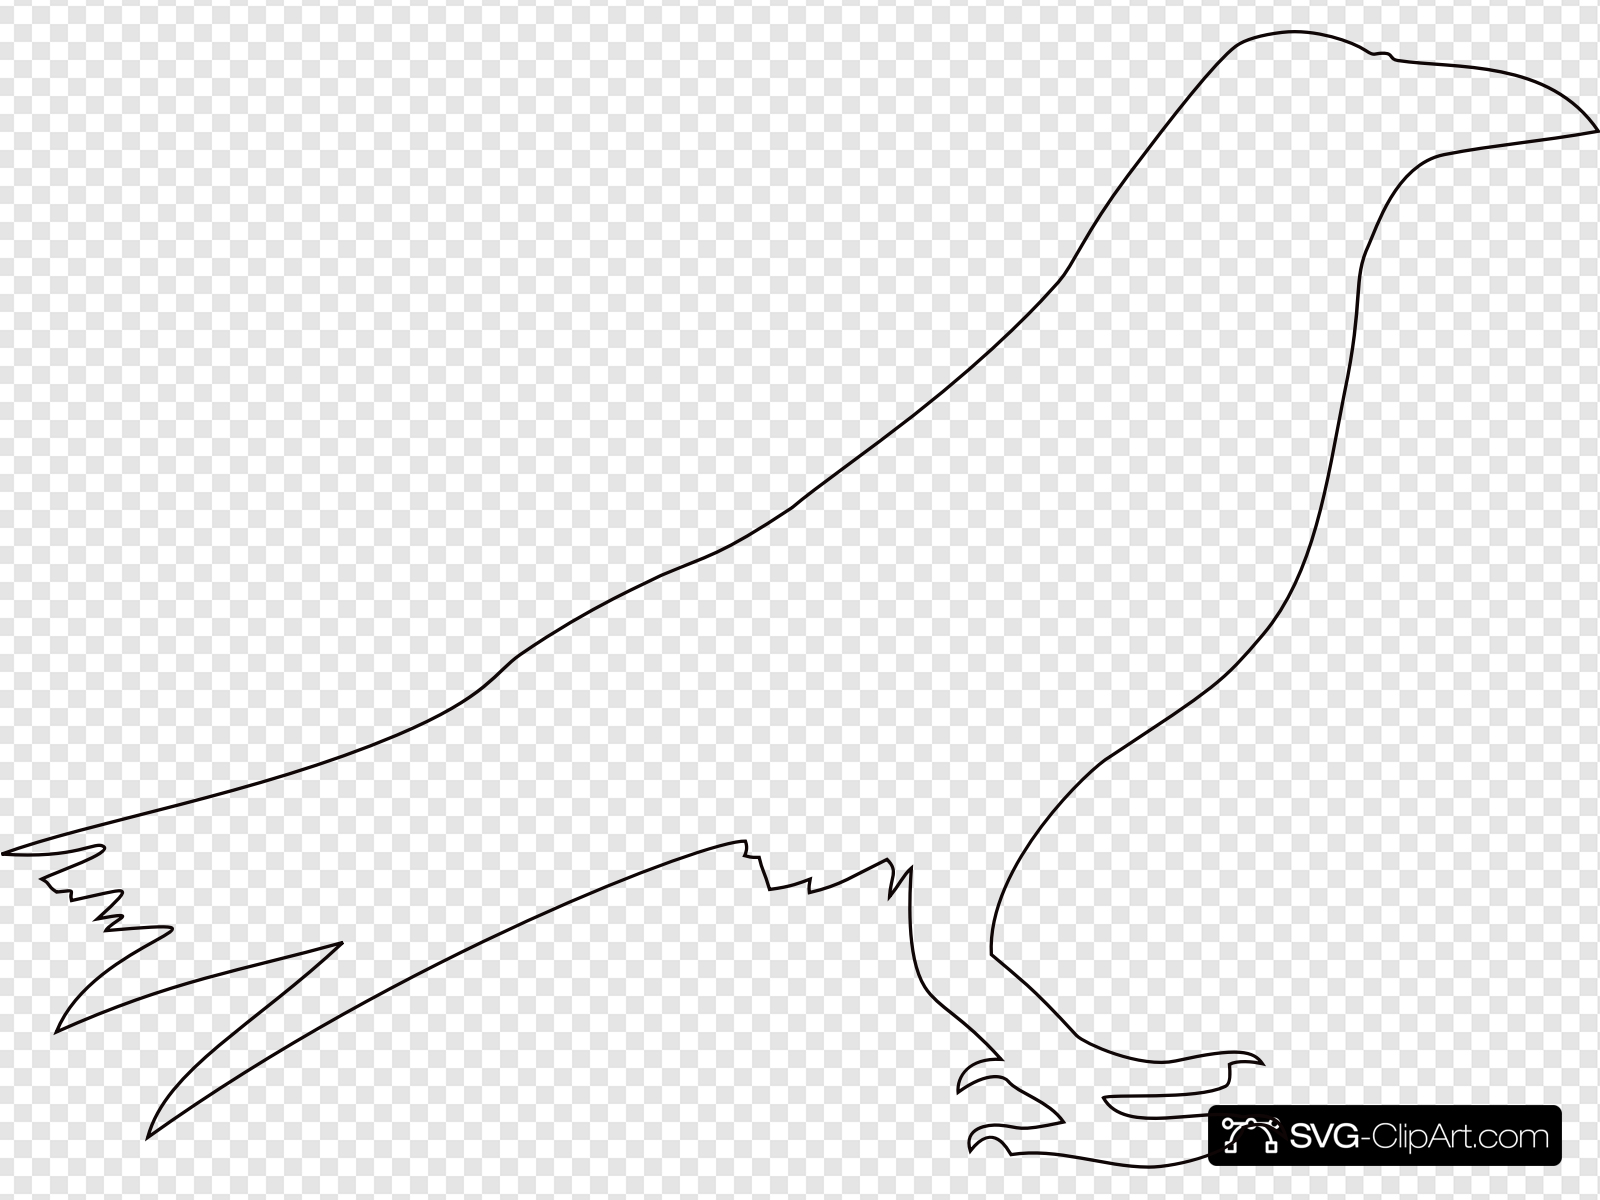 Crow Outline Clip art, Icon and SVG.